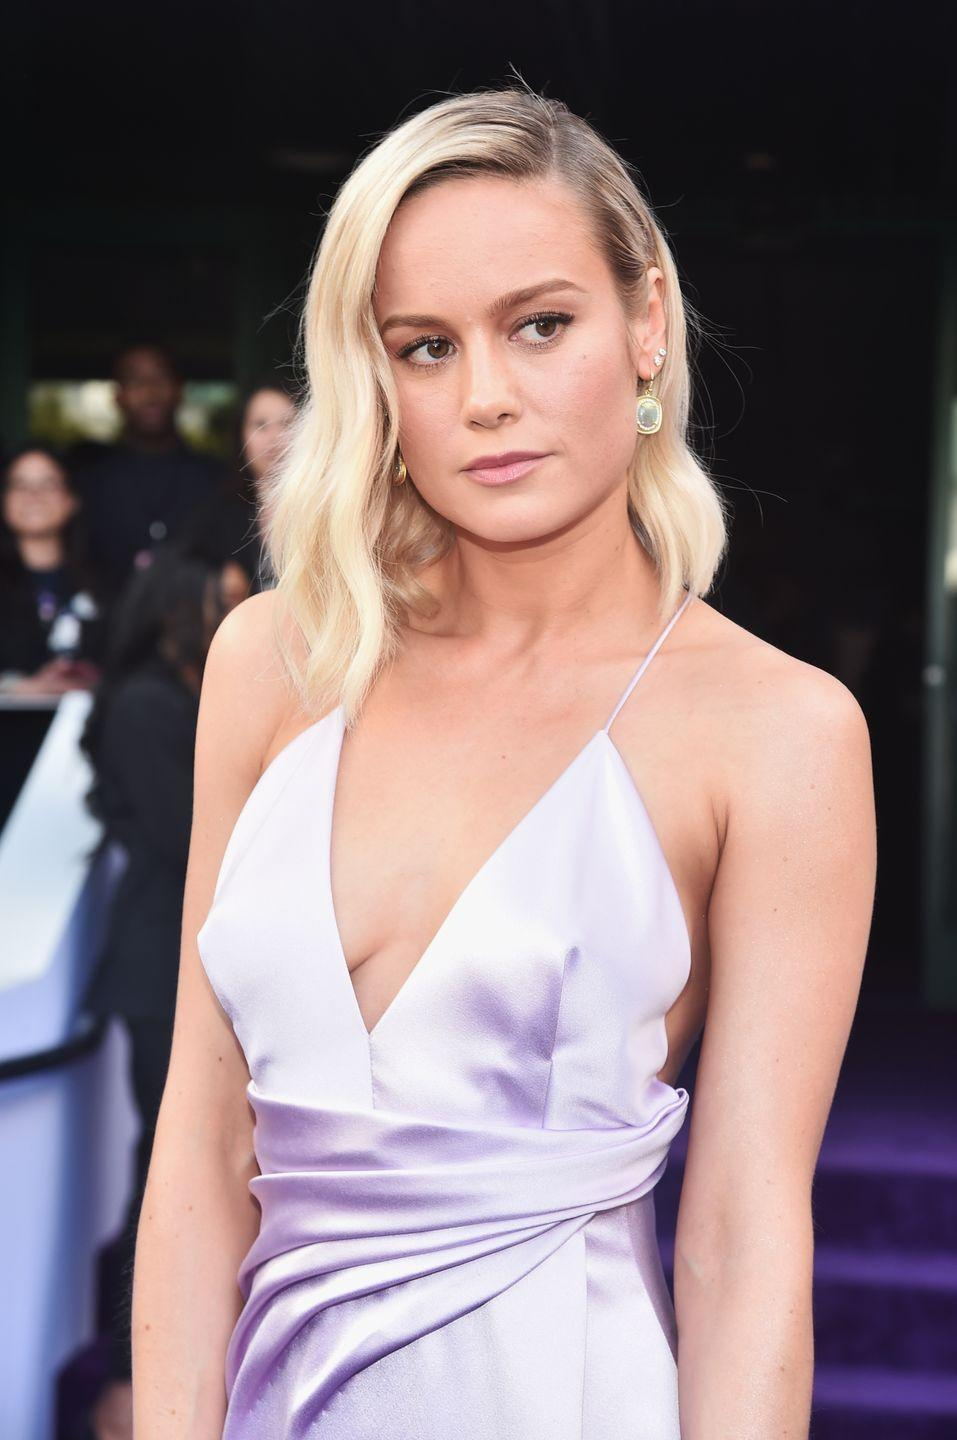 """<p>Brie Larson may be one the world's most popular actresses right now. Before she was winning Oscars for <em>Room </em>and playing Captain Marvel, Brie was gracing people with her pop-punk vocals. Her debut album, <a href=""""https://open.spotify.com/album/7qdAwO98CaFjsJ4pGWMg4S?si=miCTQqE_S2WUbYXhruUjwg"""" rel=""""nofollow noopener"""" target=""""_blank"""" data-ylk=""""slk:Finally Out of P.E."""" class=""""link rapid-noclick-resp""""><em>Finally Out of P.E.</em></a>, was about as angsty as a 15-year-old Brie could get. (Think of a less biting Avril Lavigne). Her single """"She Said"""" <a href=""""https://web.archive.org/web/20181109152939/https://www.billboard.com/biz/search/charts?f%5B0%5D=ss_chart_search_title%3A%22She%20Said%22&f%5B1%5D=ts_chart_artistname%3ABrie%20Larson&refine=1"""" rel=""""nofollow noopener"""" target=""""_blank"""" data-ylk=""""slk:peaked at No. 31 on Billboard's Hot Singles chart"""" class=""""link rapid-noclick-resp"""">peaked at No. 31 on <em>Billboard</em>'s Hot Singles chart</a>.</p>"""